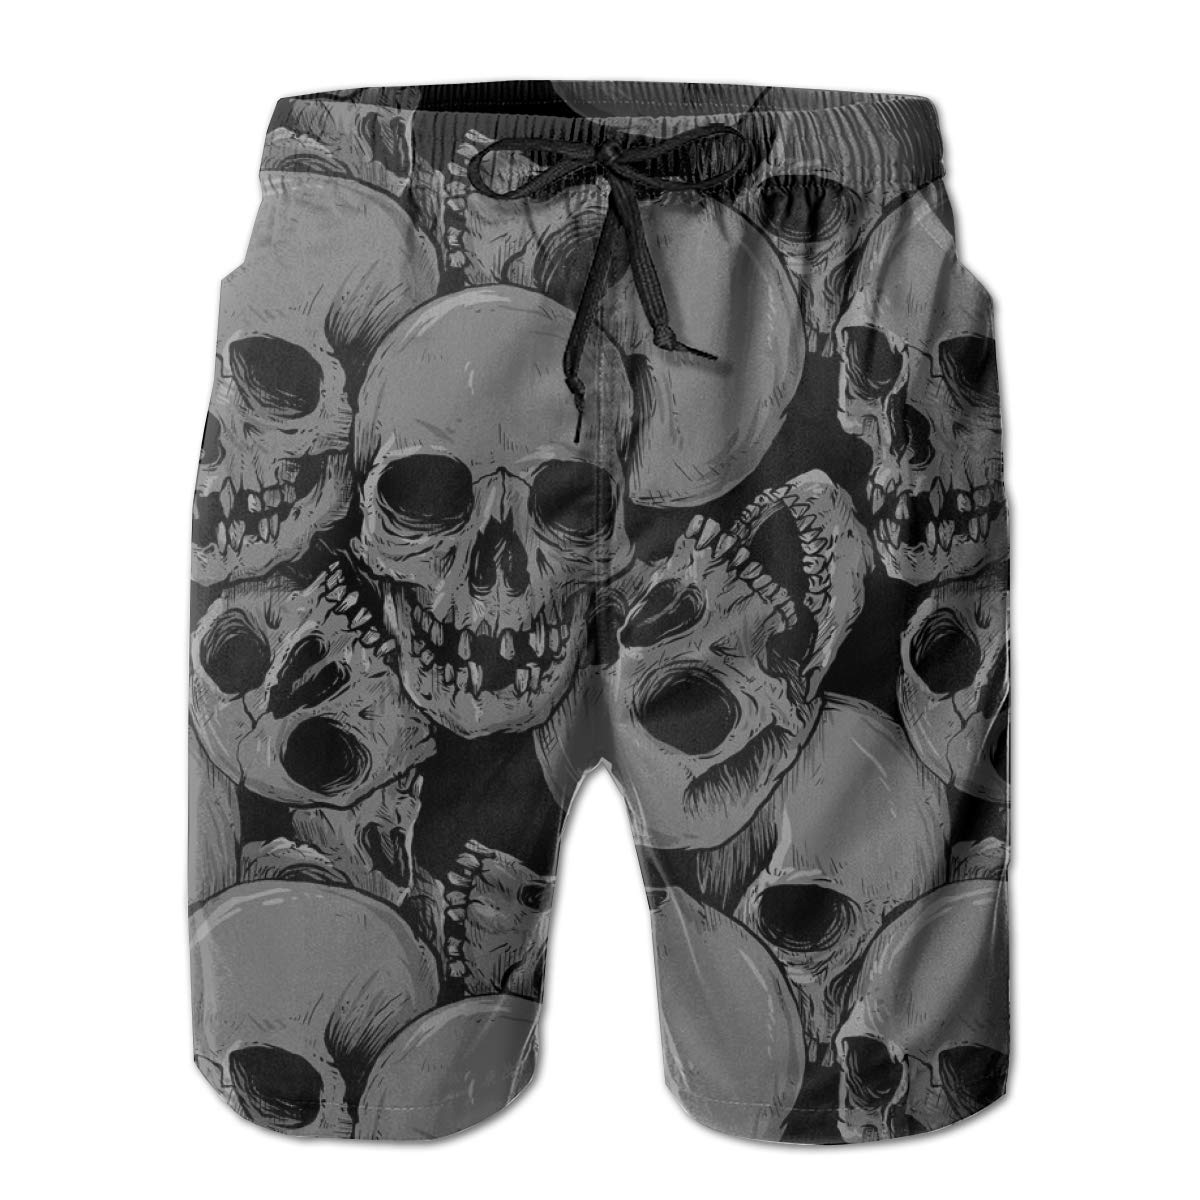 A Lot of Skulls TLDRZD Men/¡/¯s Boardshorts Perfect Swimsuit//Swim Trunks//Board Shorts for The Beach//Surfing//Pool//Swimming